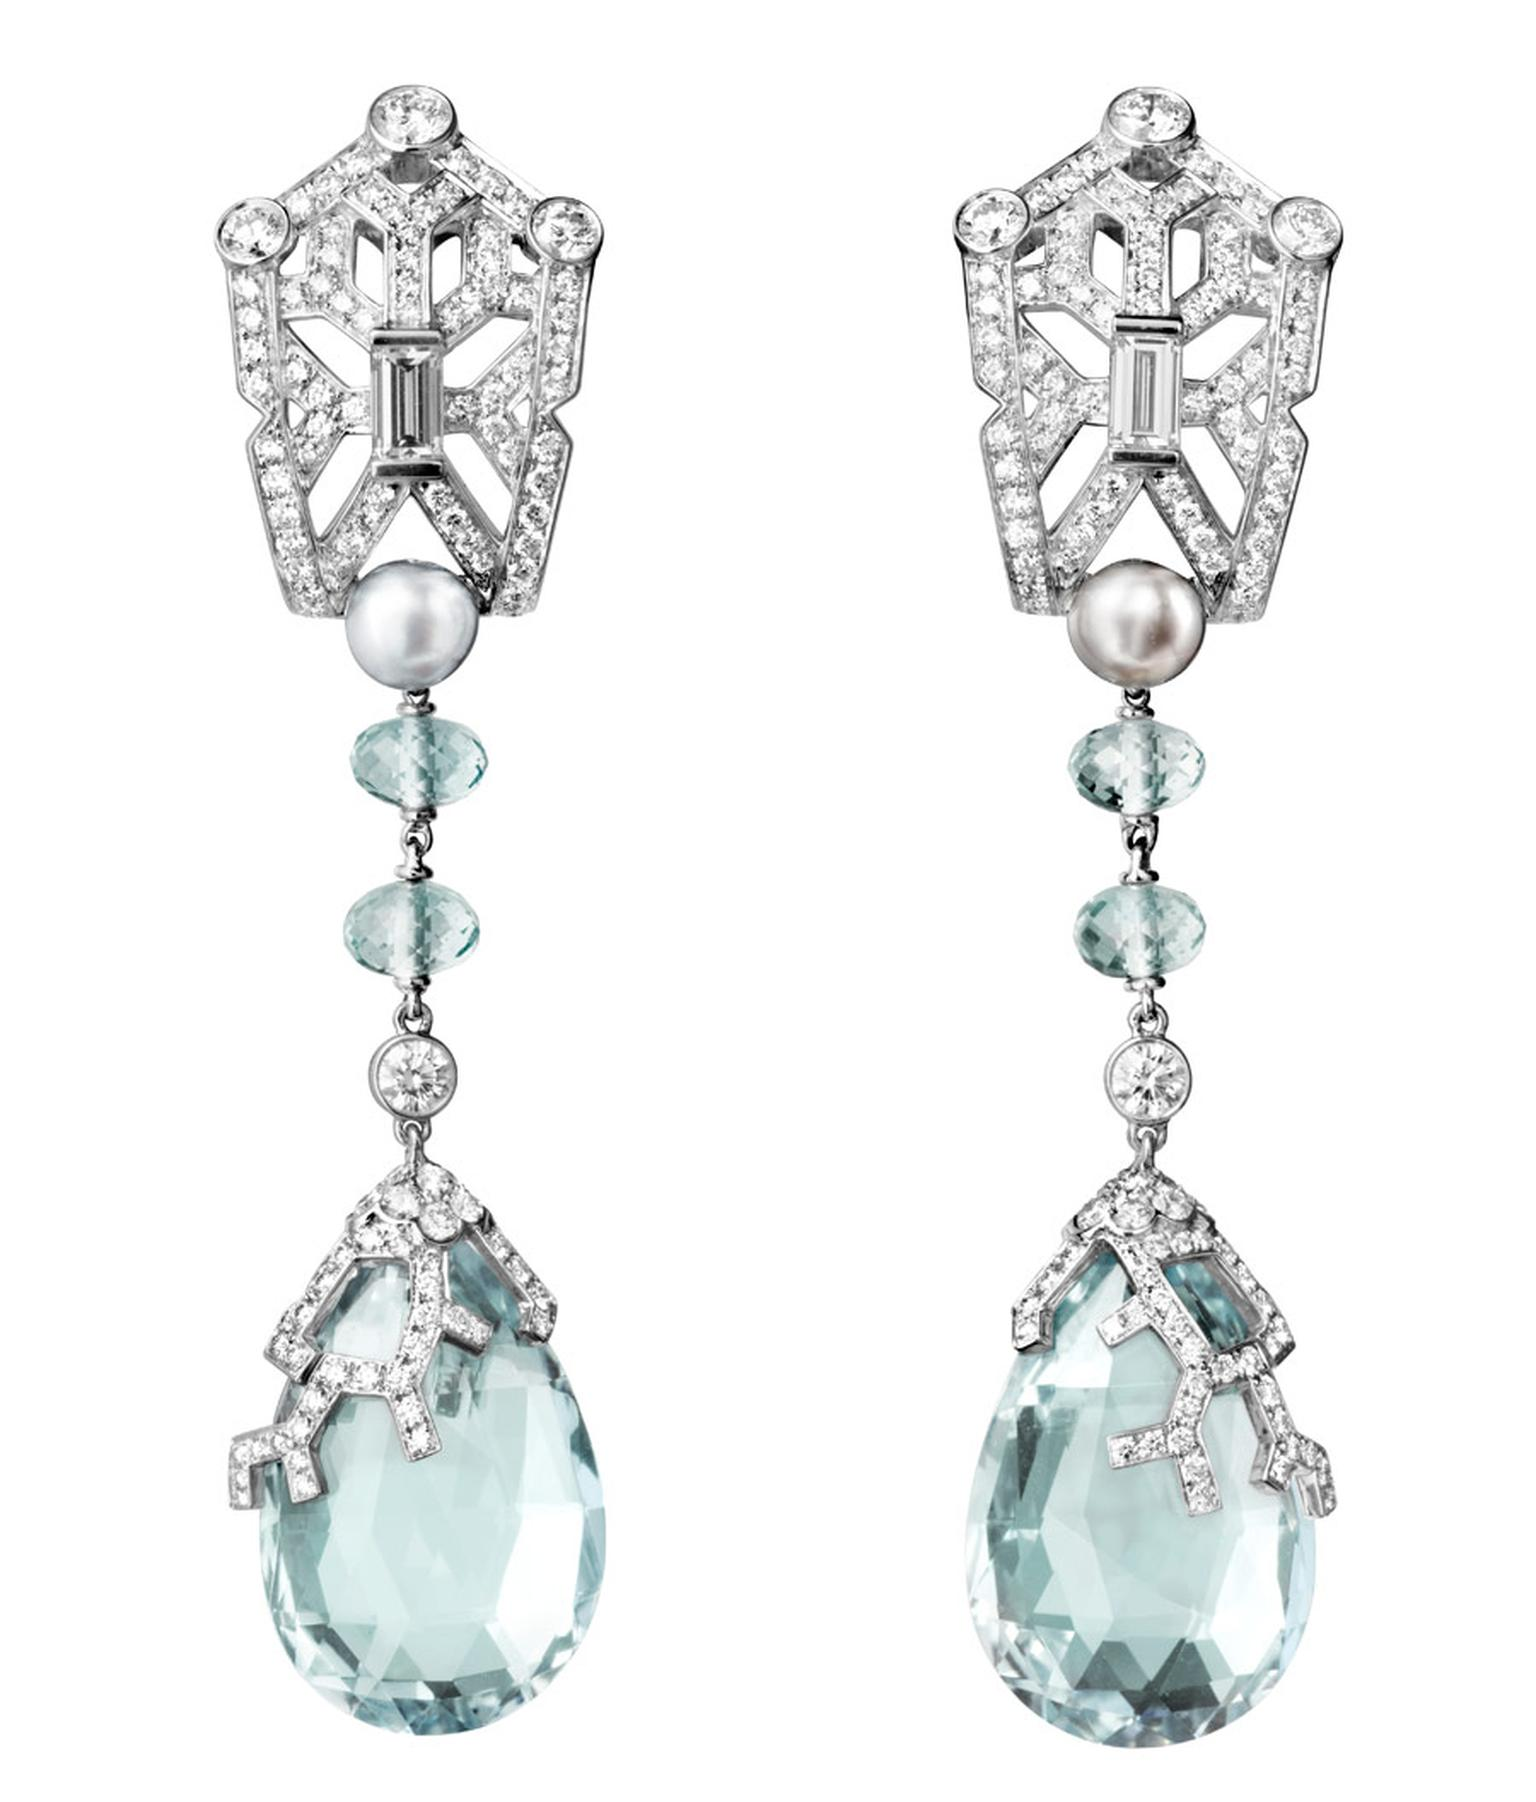 Cartier-Boreal-Earrings.jpg